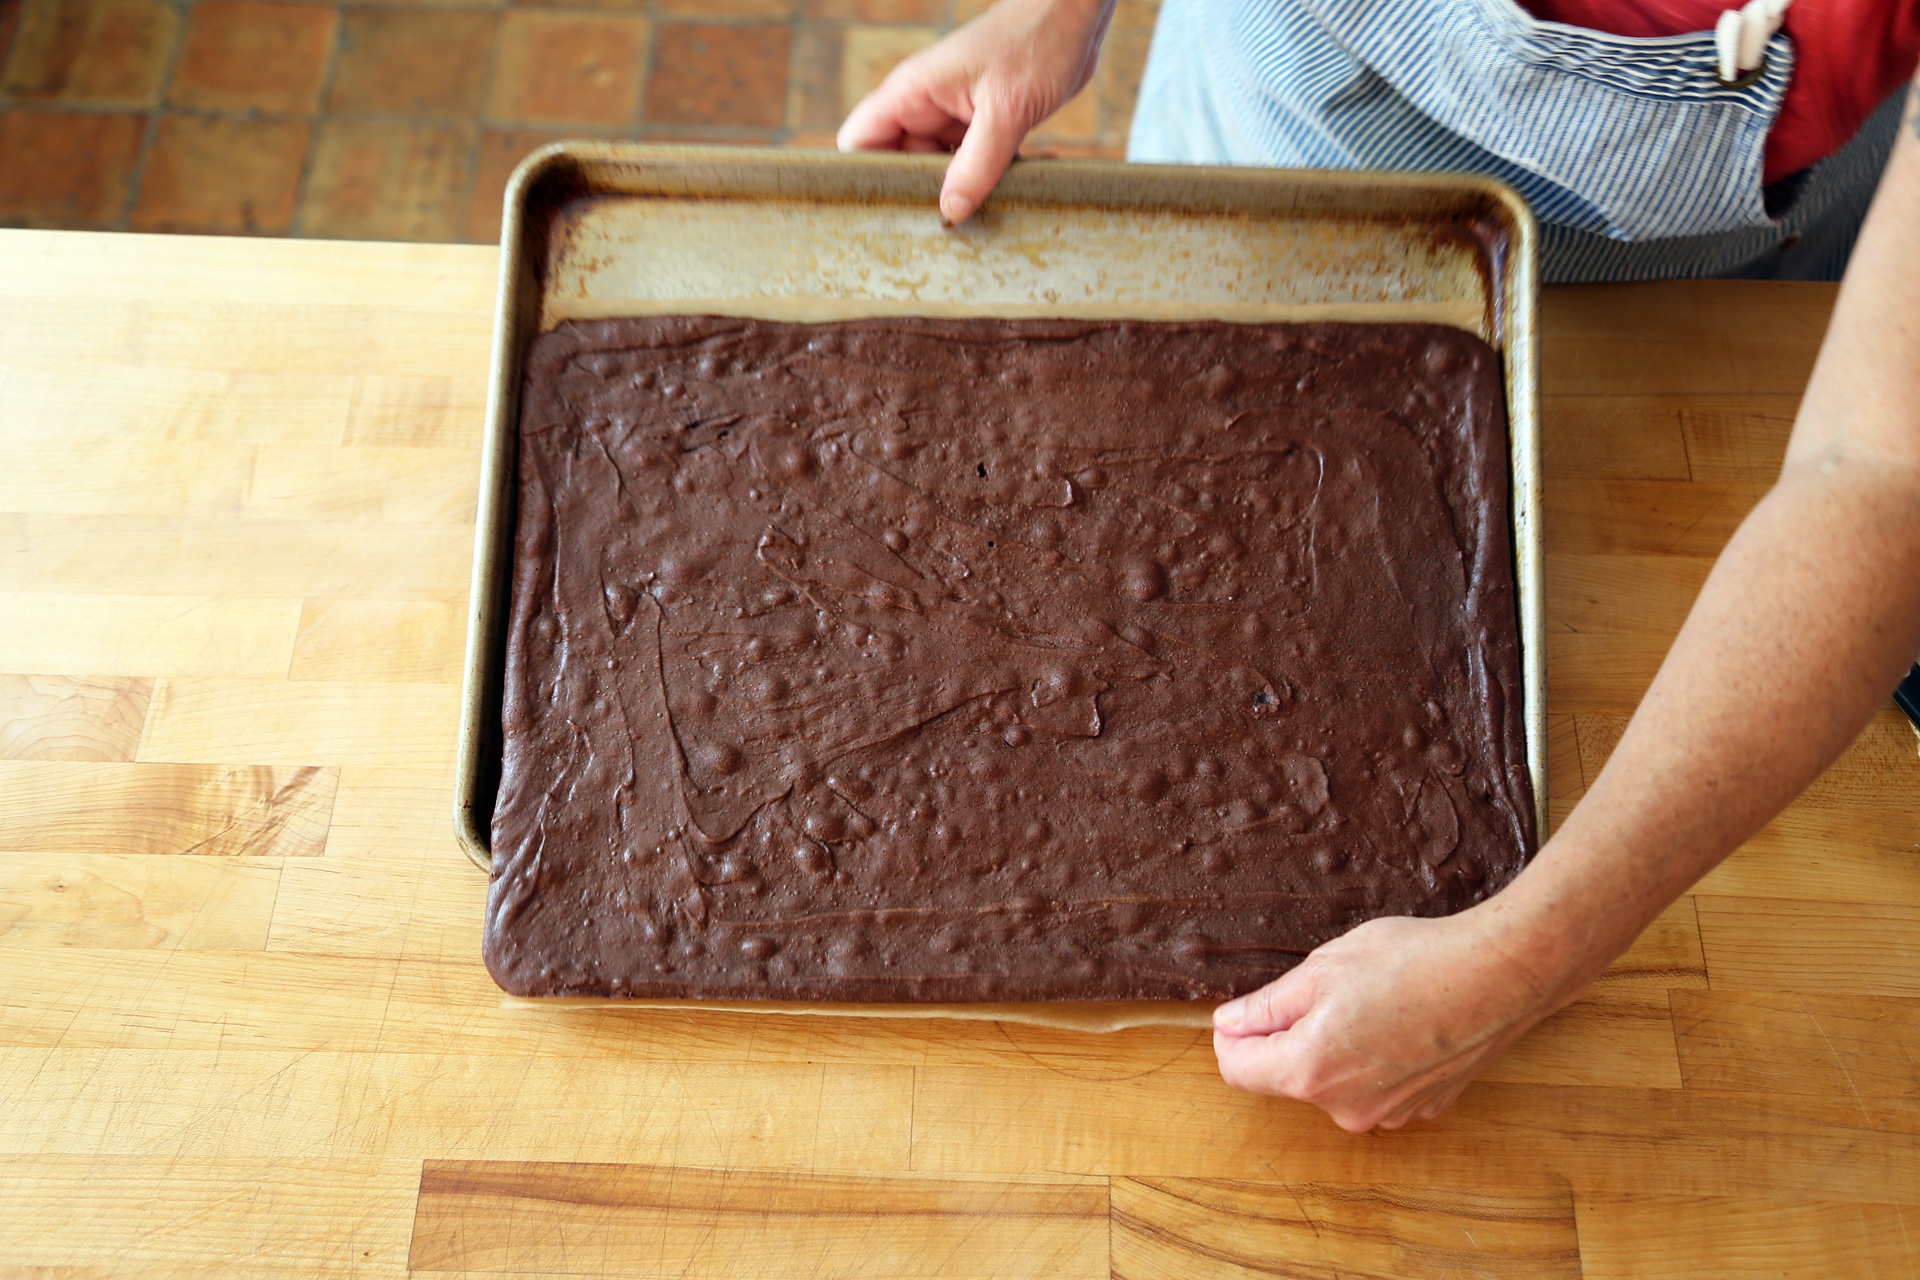 When cool, slide the brownie onto a work surface.